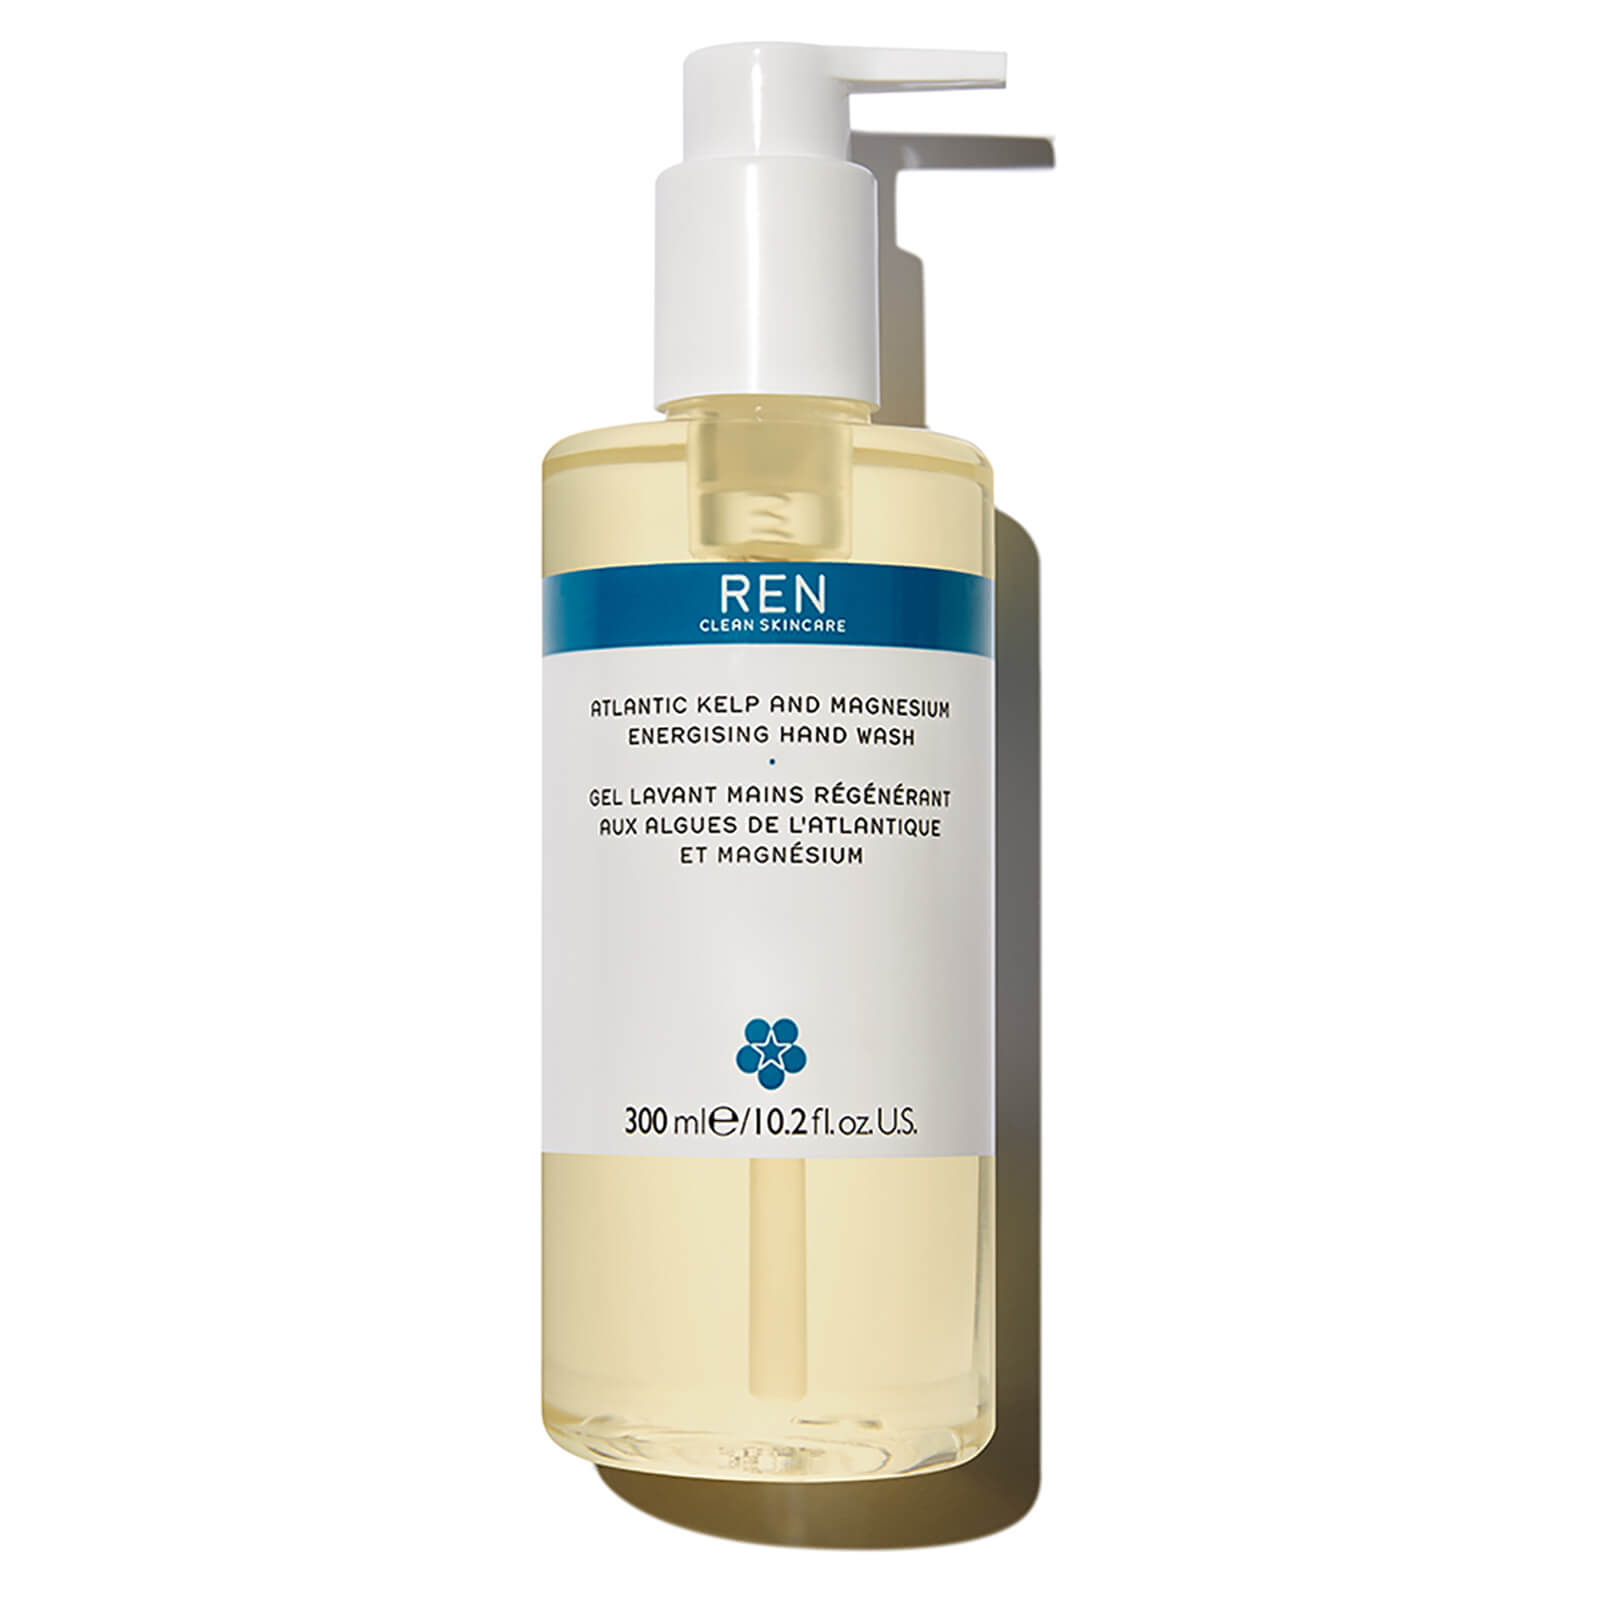 REN Clean Skincare Skincare Atlantic Kelp and Magnesium Energising Hand Wash 300ml